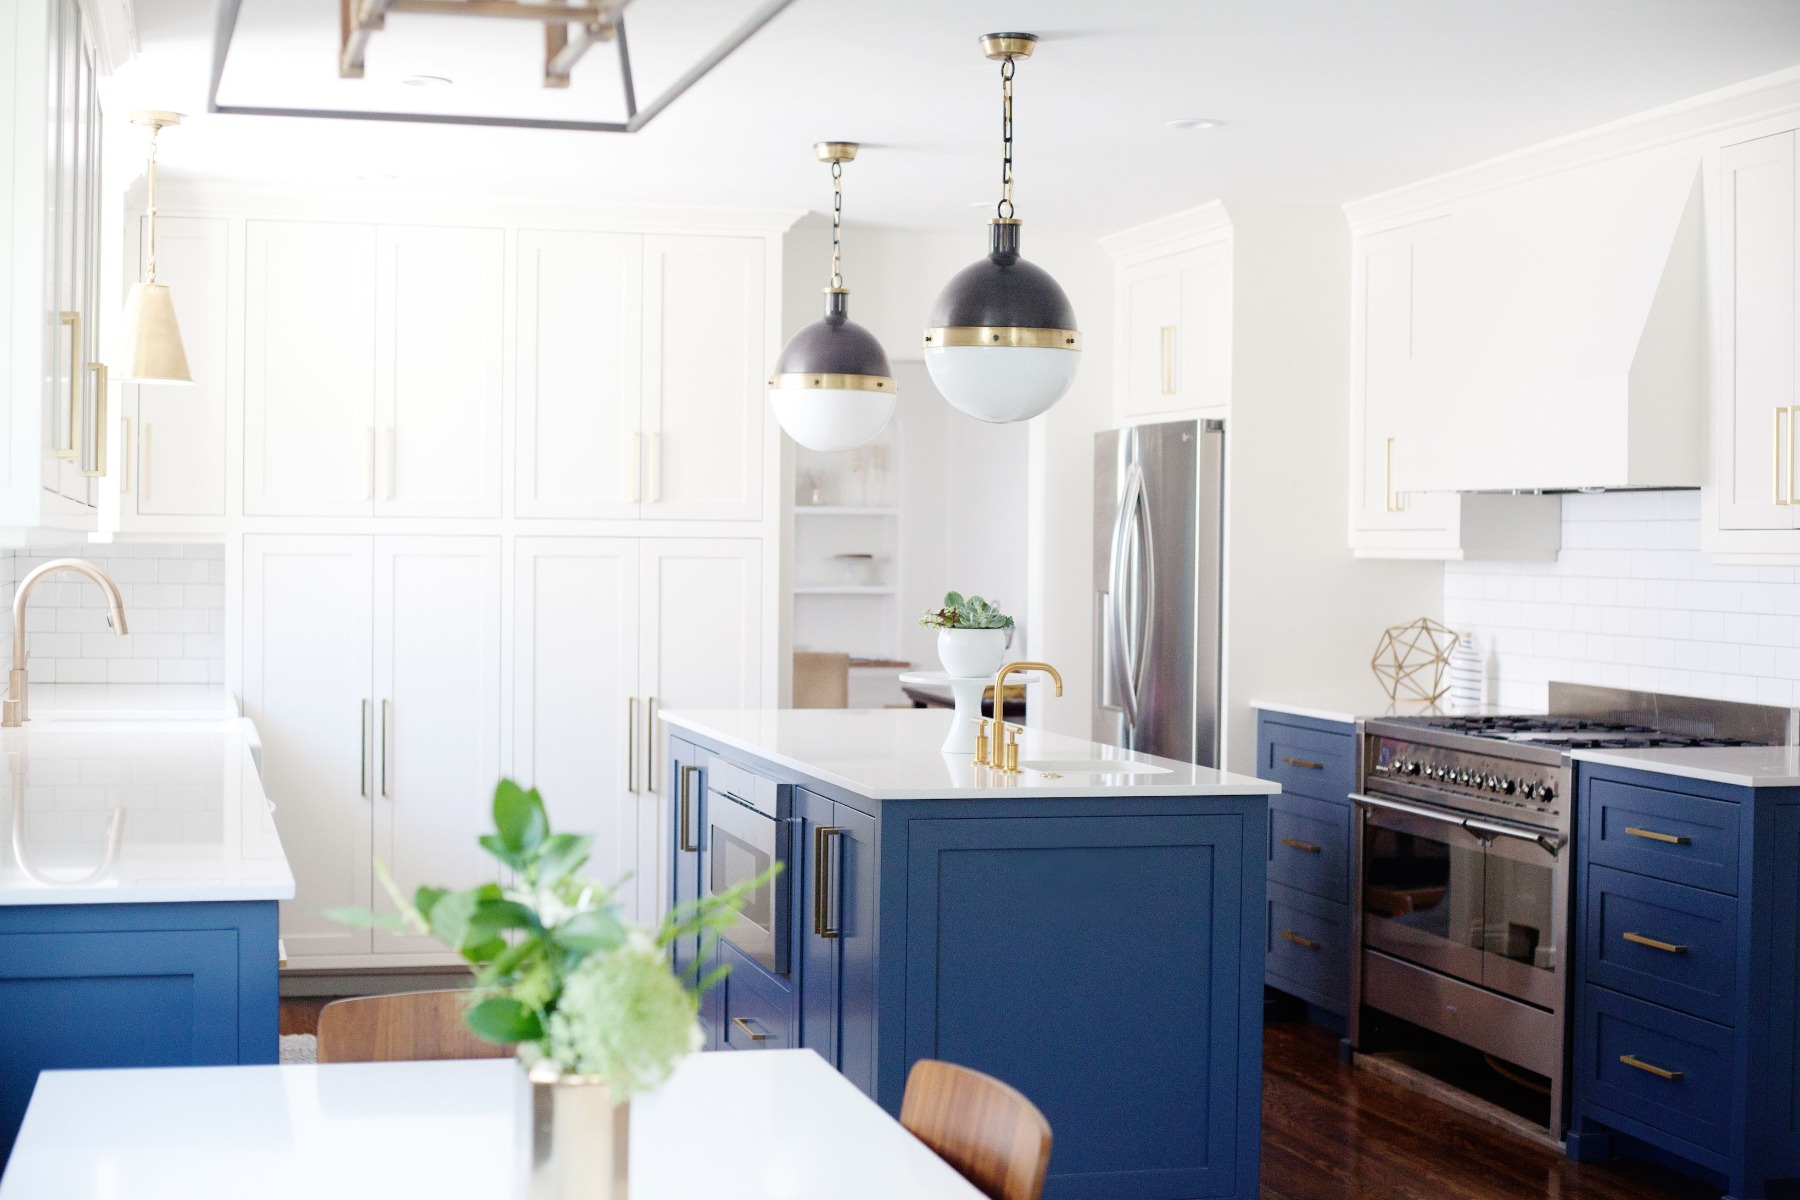 stone kitchen with gold fixings